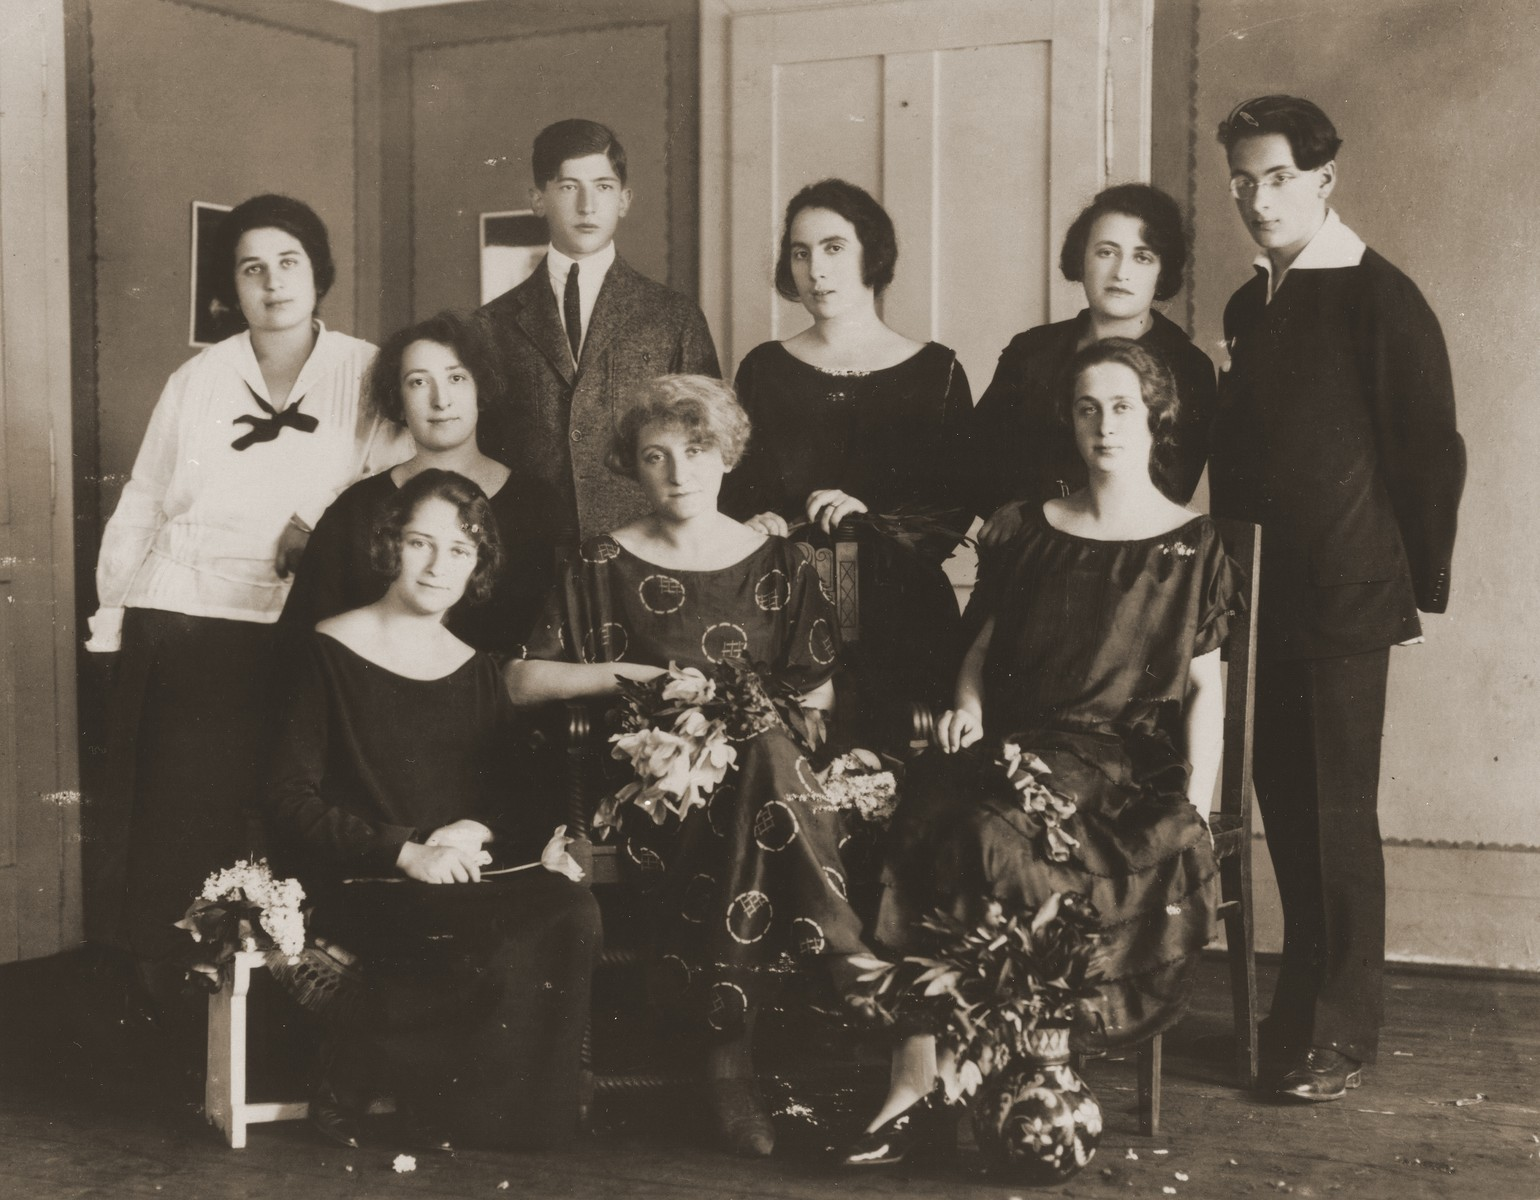 Mrs. Kolnik, a piano teacher in Czernowitz, poses with her students at a piano recital.  Among those pictured are:  Hansi Lifschitz Geiger (top, left) and Stella Schmirer Loebl (bottom, left).